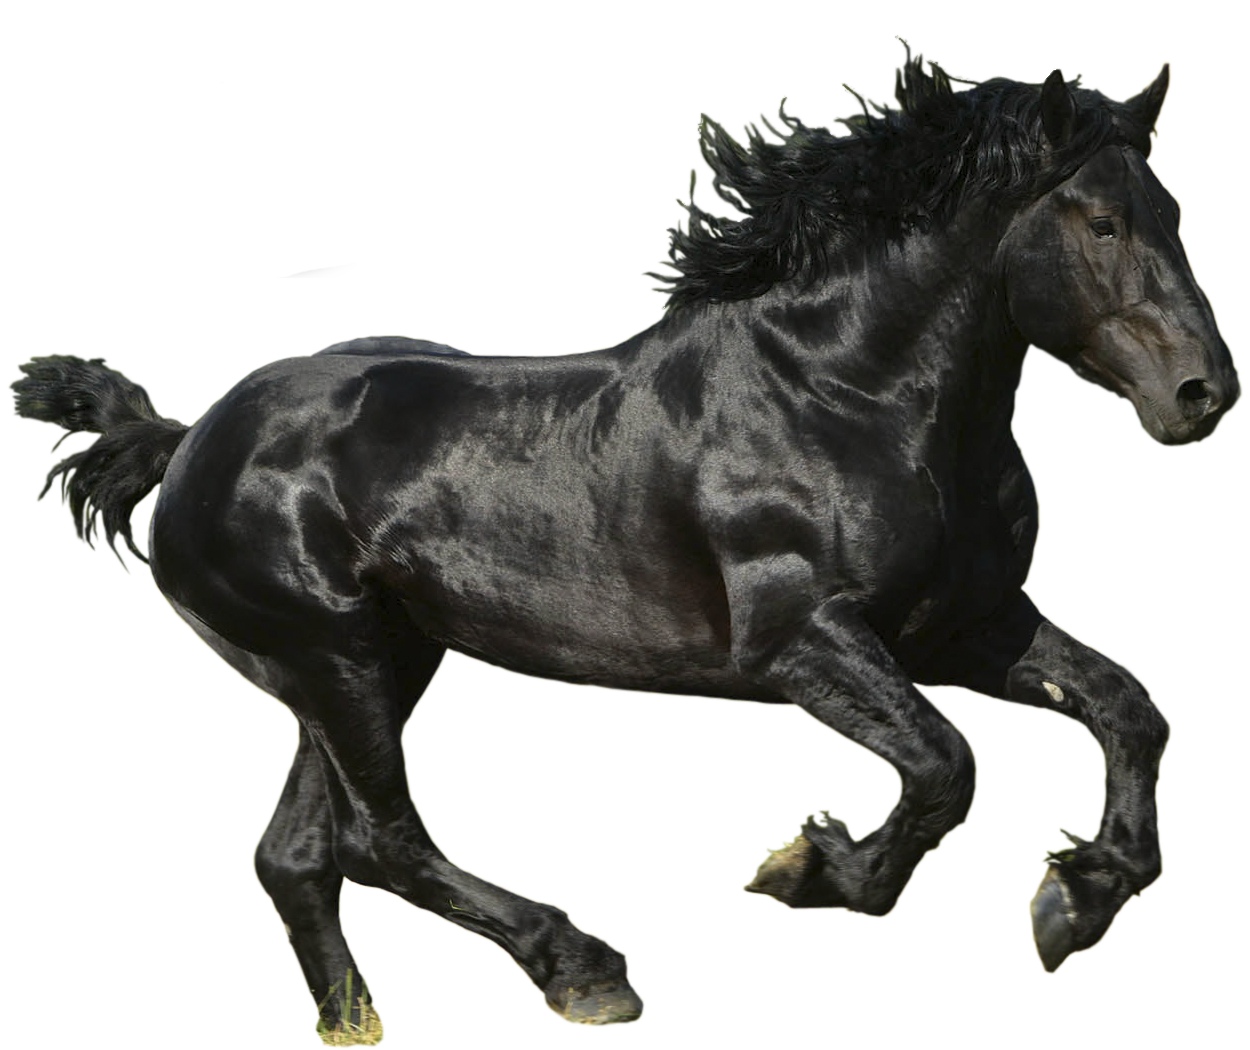 Black horse png. Picture free runing